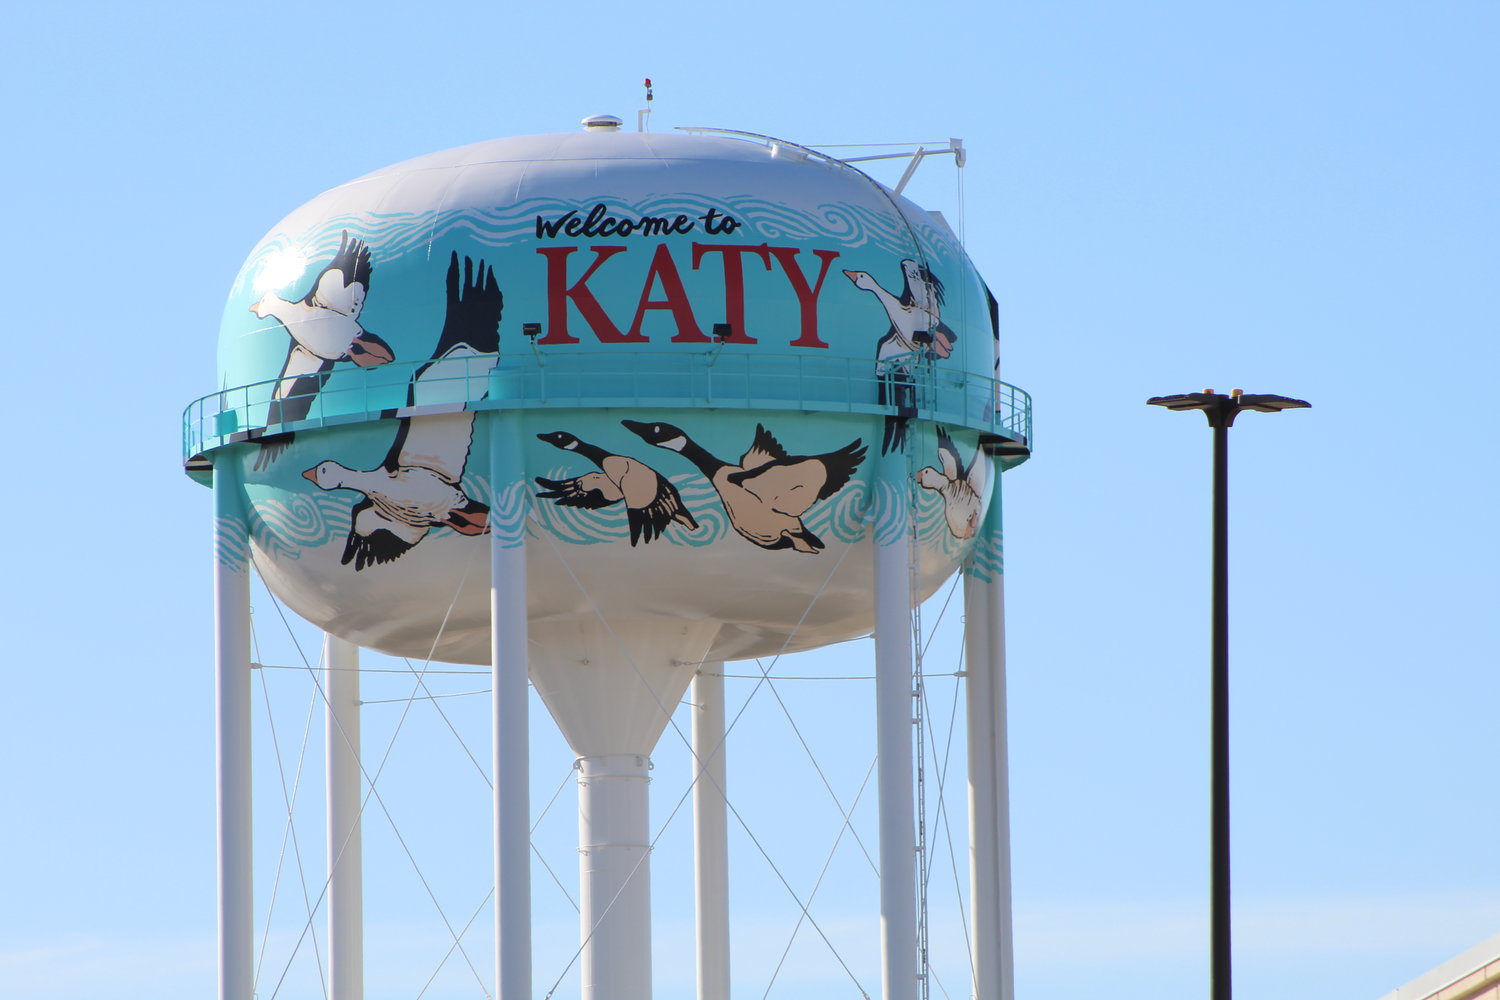 Winter Storm Uri damaged waterlines in hundreds of homes in the city of Katy the week after Valentine's Day. The city has adopted a policy that will allow those whose water bills were impacted by water leaks during that time to get some relief from increased water bills caused by leaky pipes.